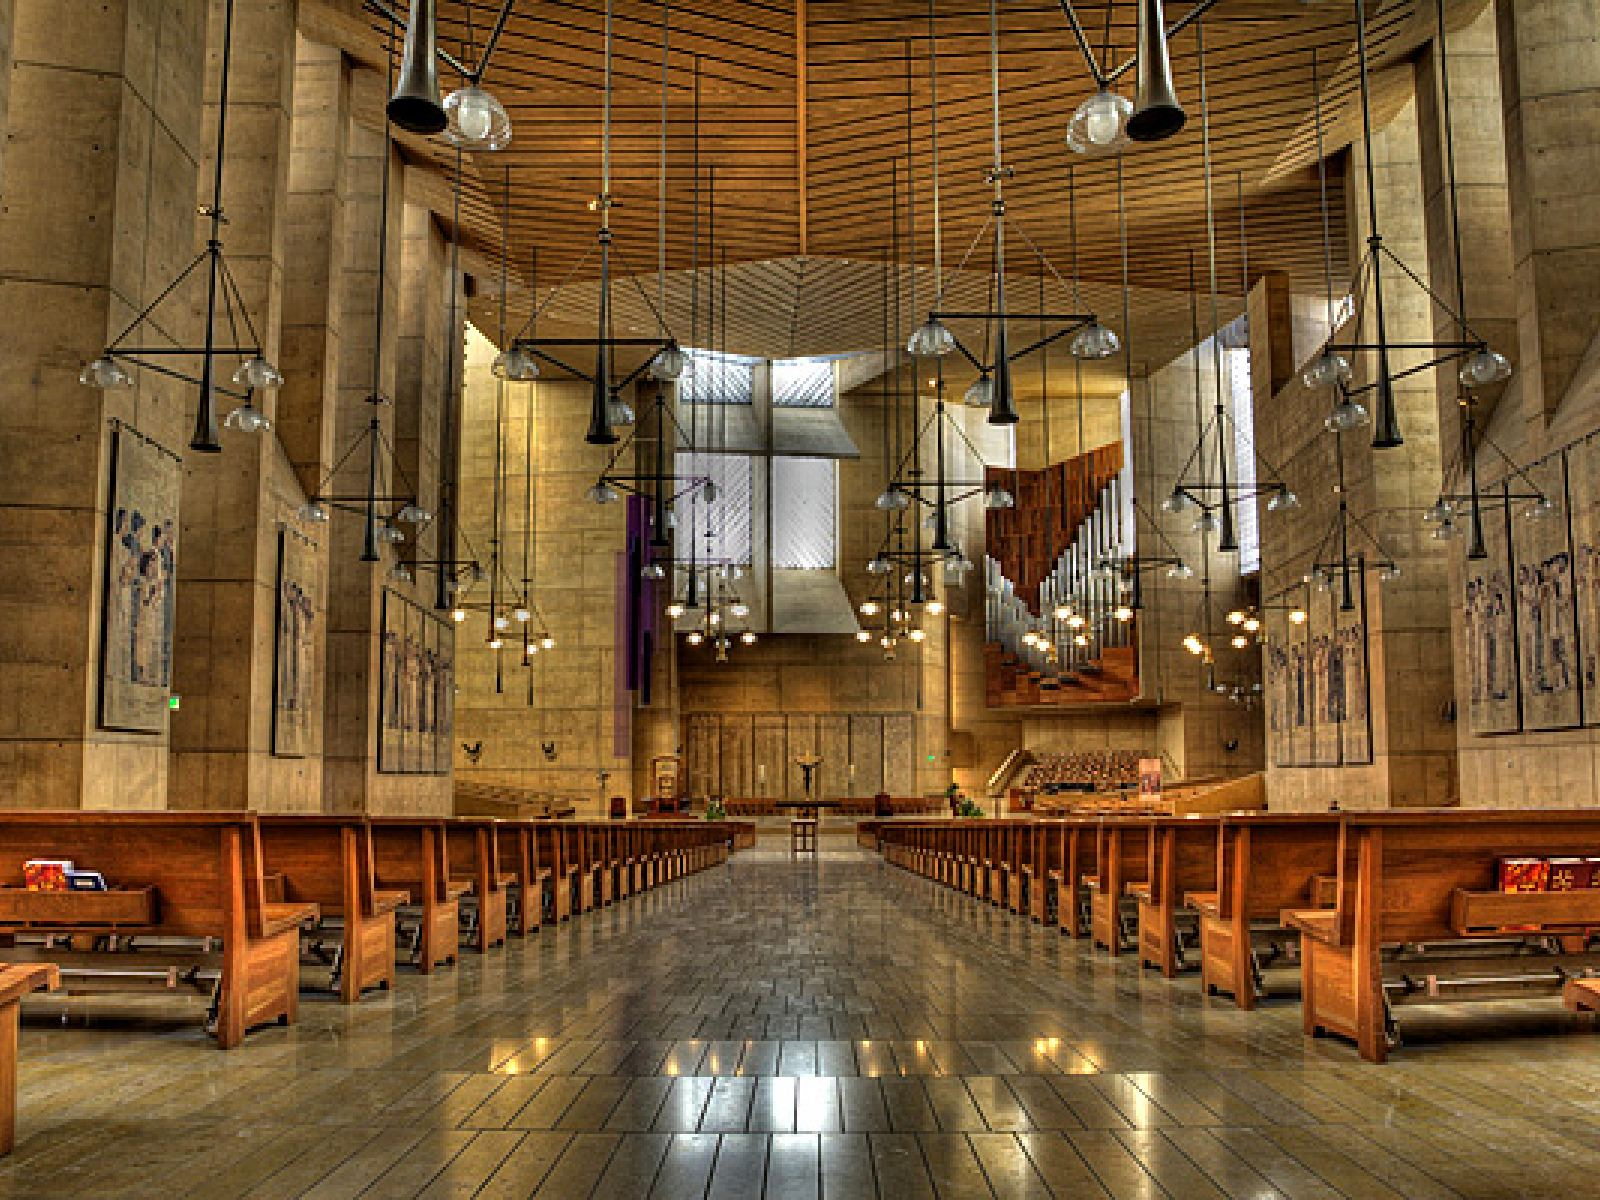 Main image for article titled Cathedral of Our Lady of the Angels